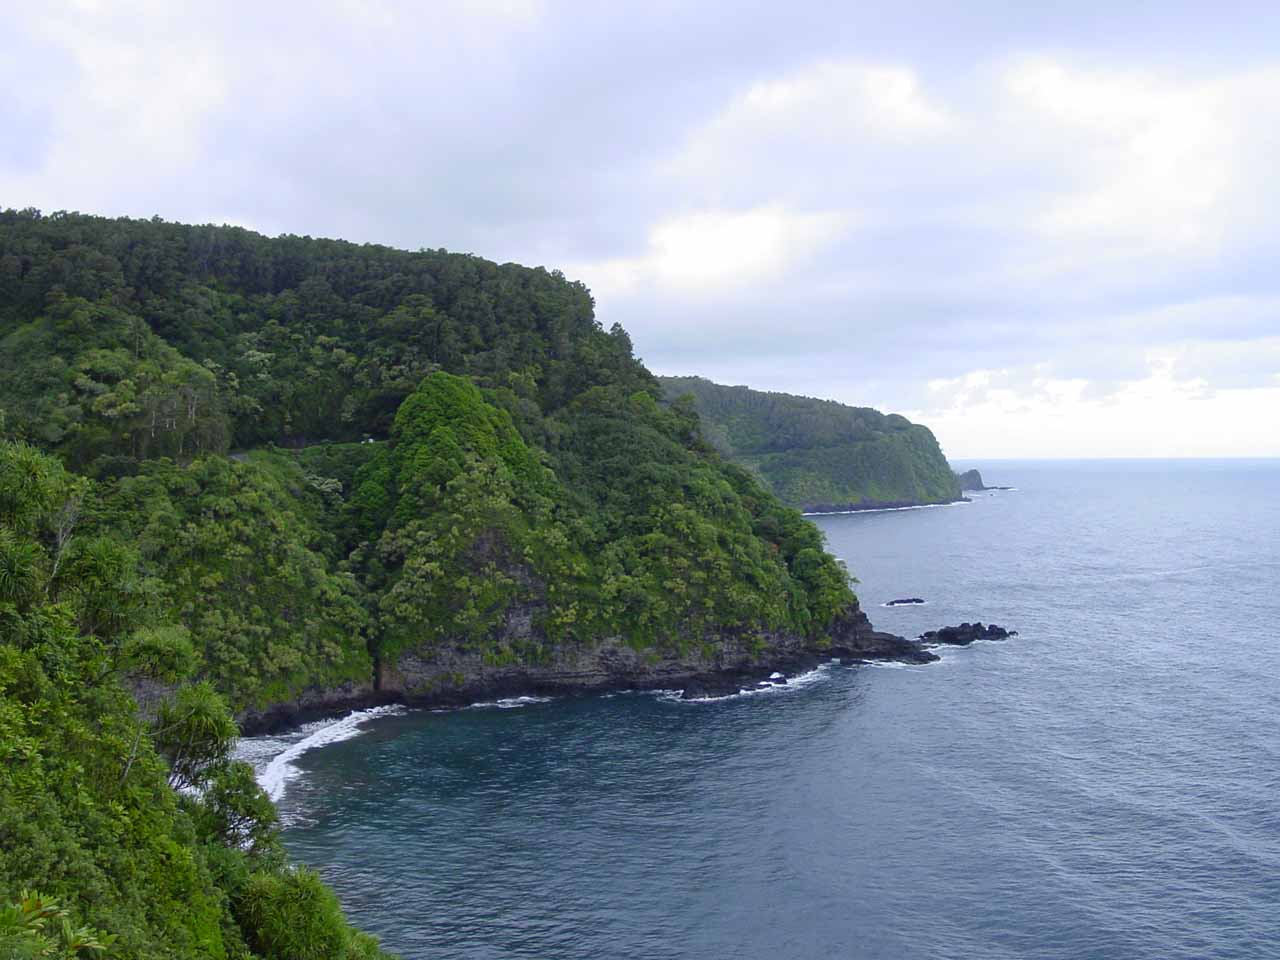 View of the coastline through which Hana Highway curves its way through